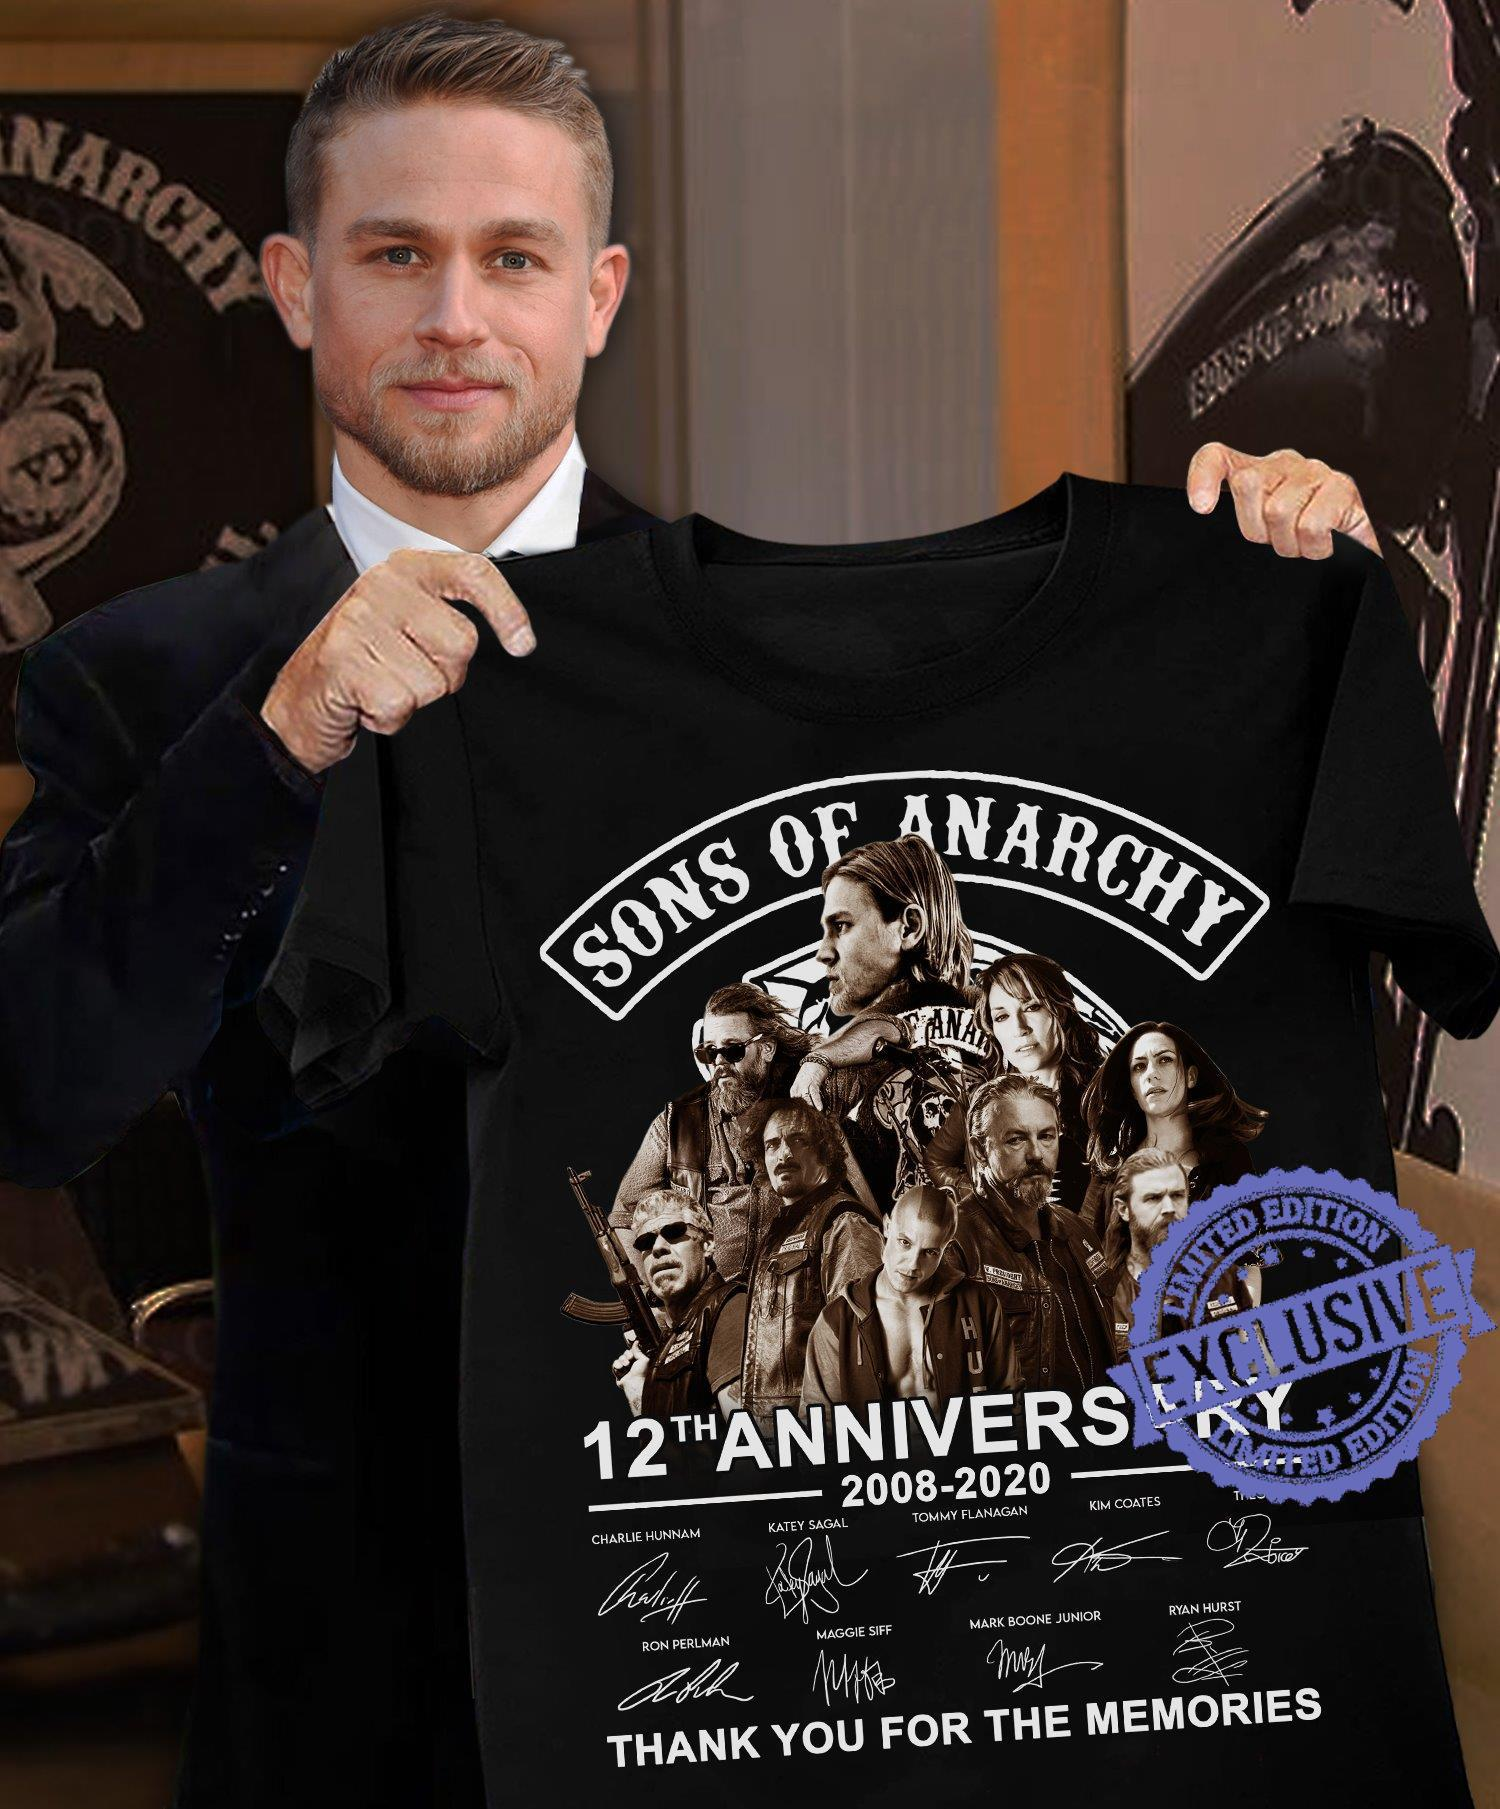 Sons of anarchy 12th anniversary thank you for the memories shirt